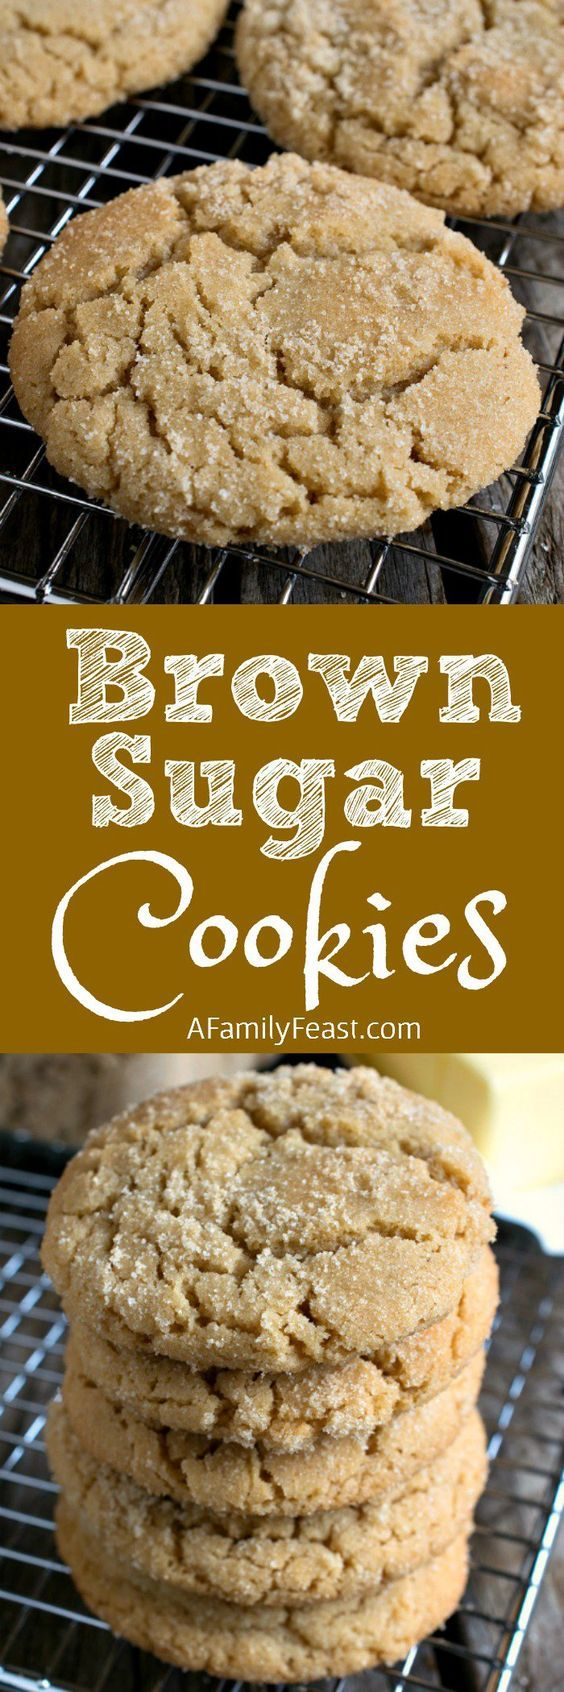 Brown Sugar Cookies ~ a clever twist on the traditional sugar cookie recipe thanks to some simple swaps that add great flavor!